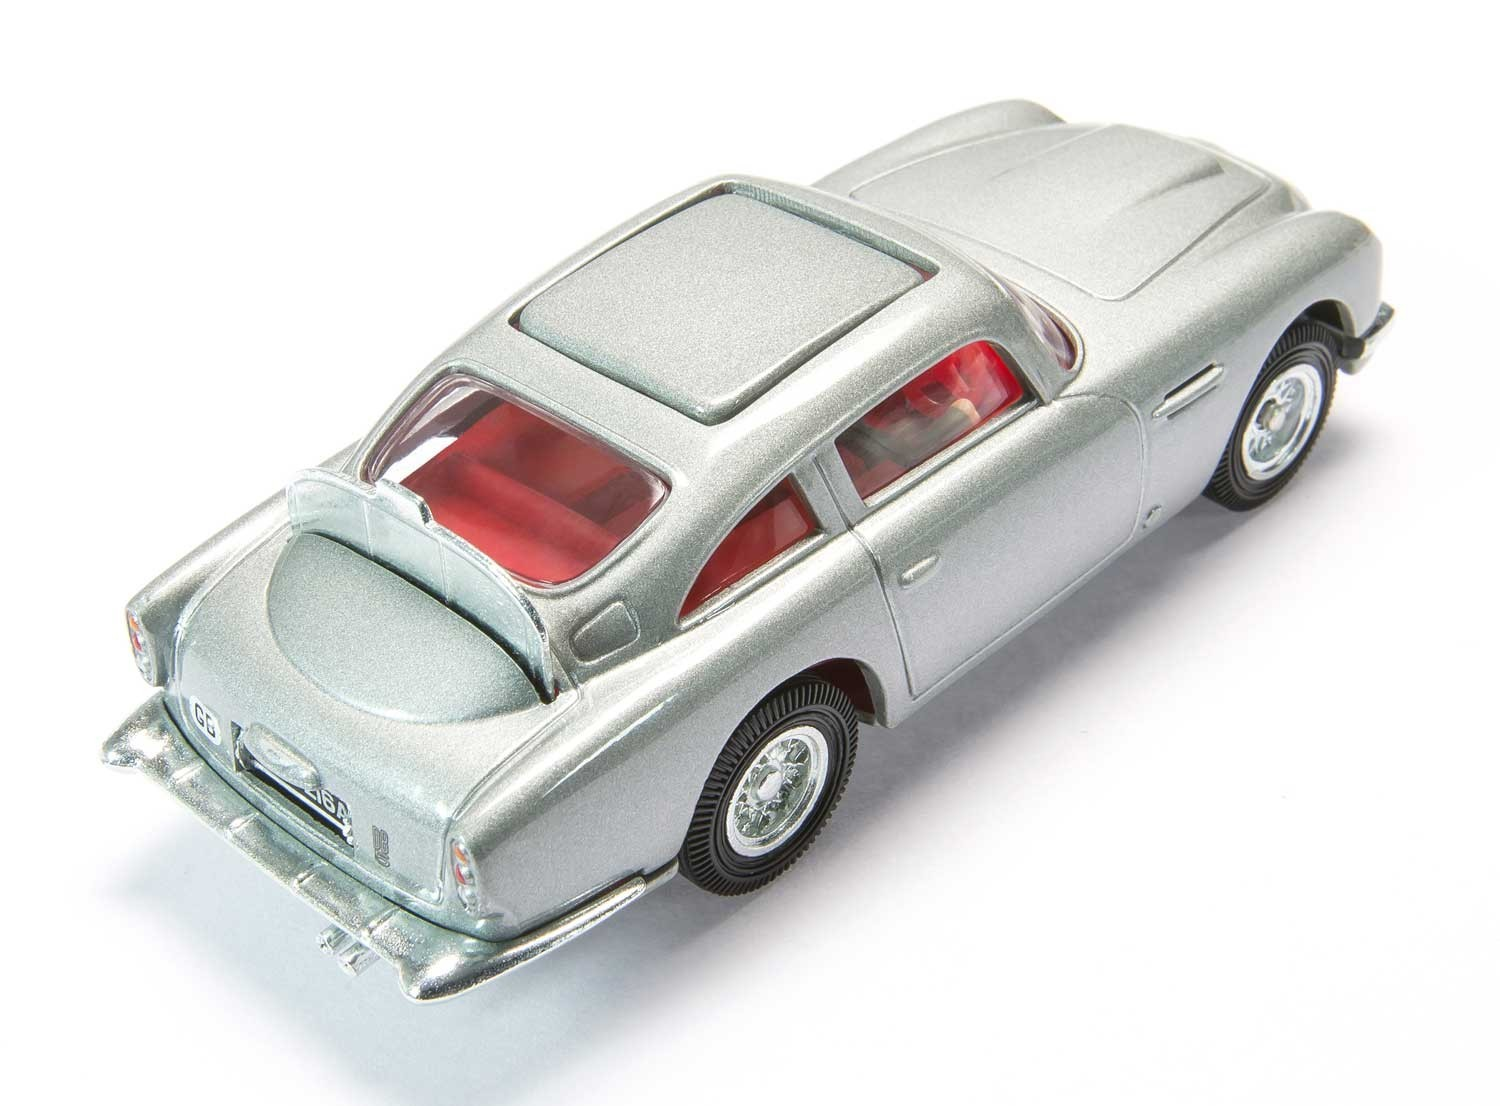 1/43 James Bond Aston Martin DB5 (Silver) image